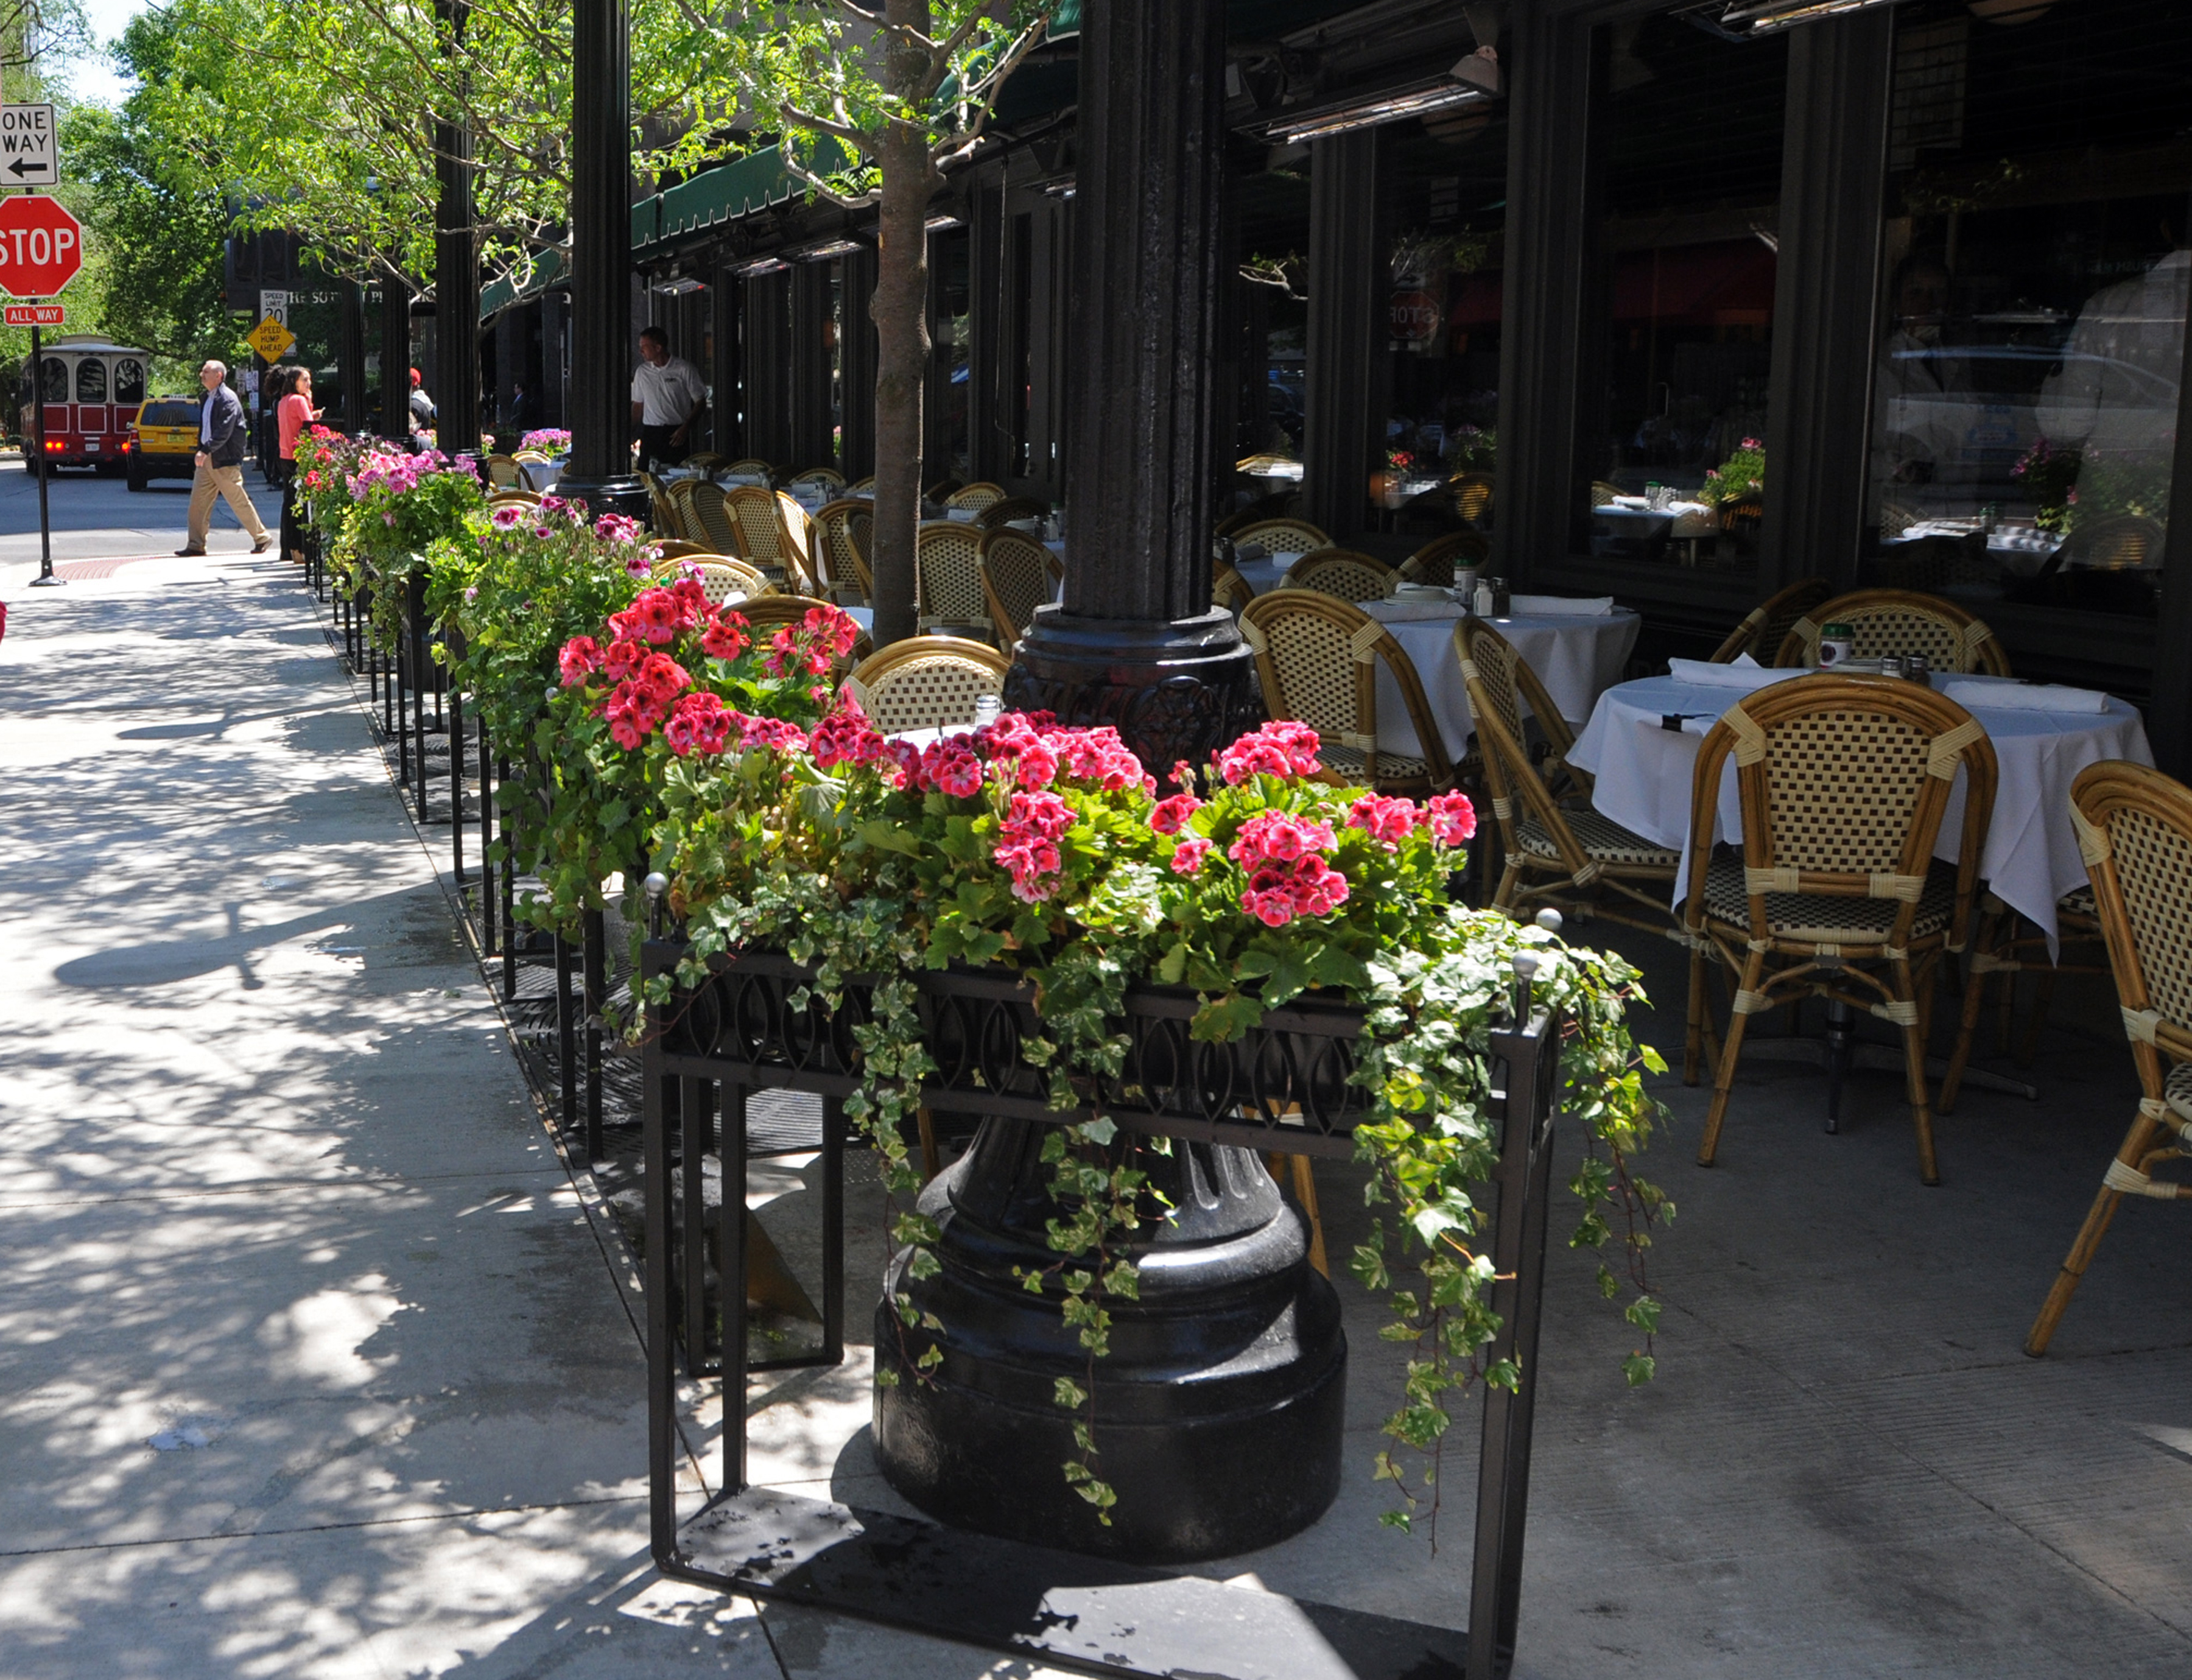 An outdoor seating area at a Chicago restaurant.